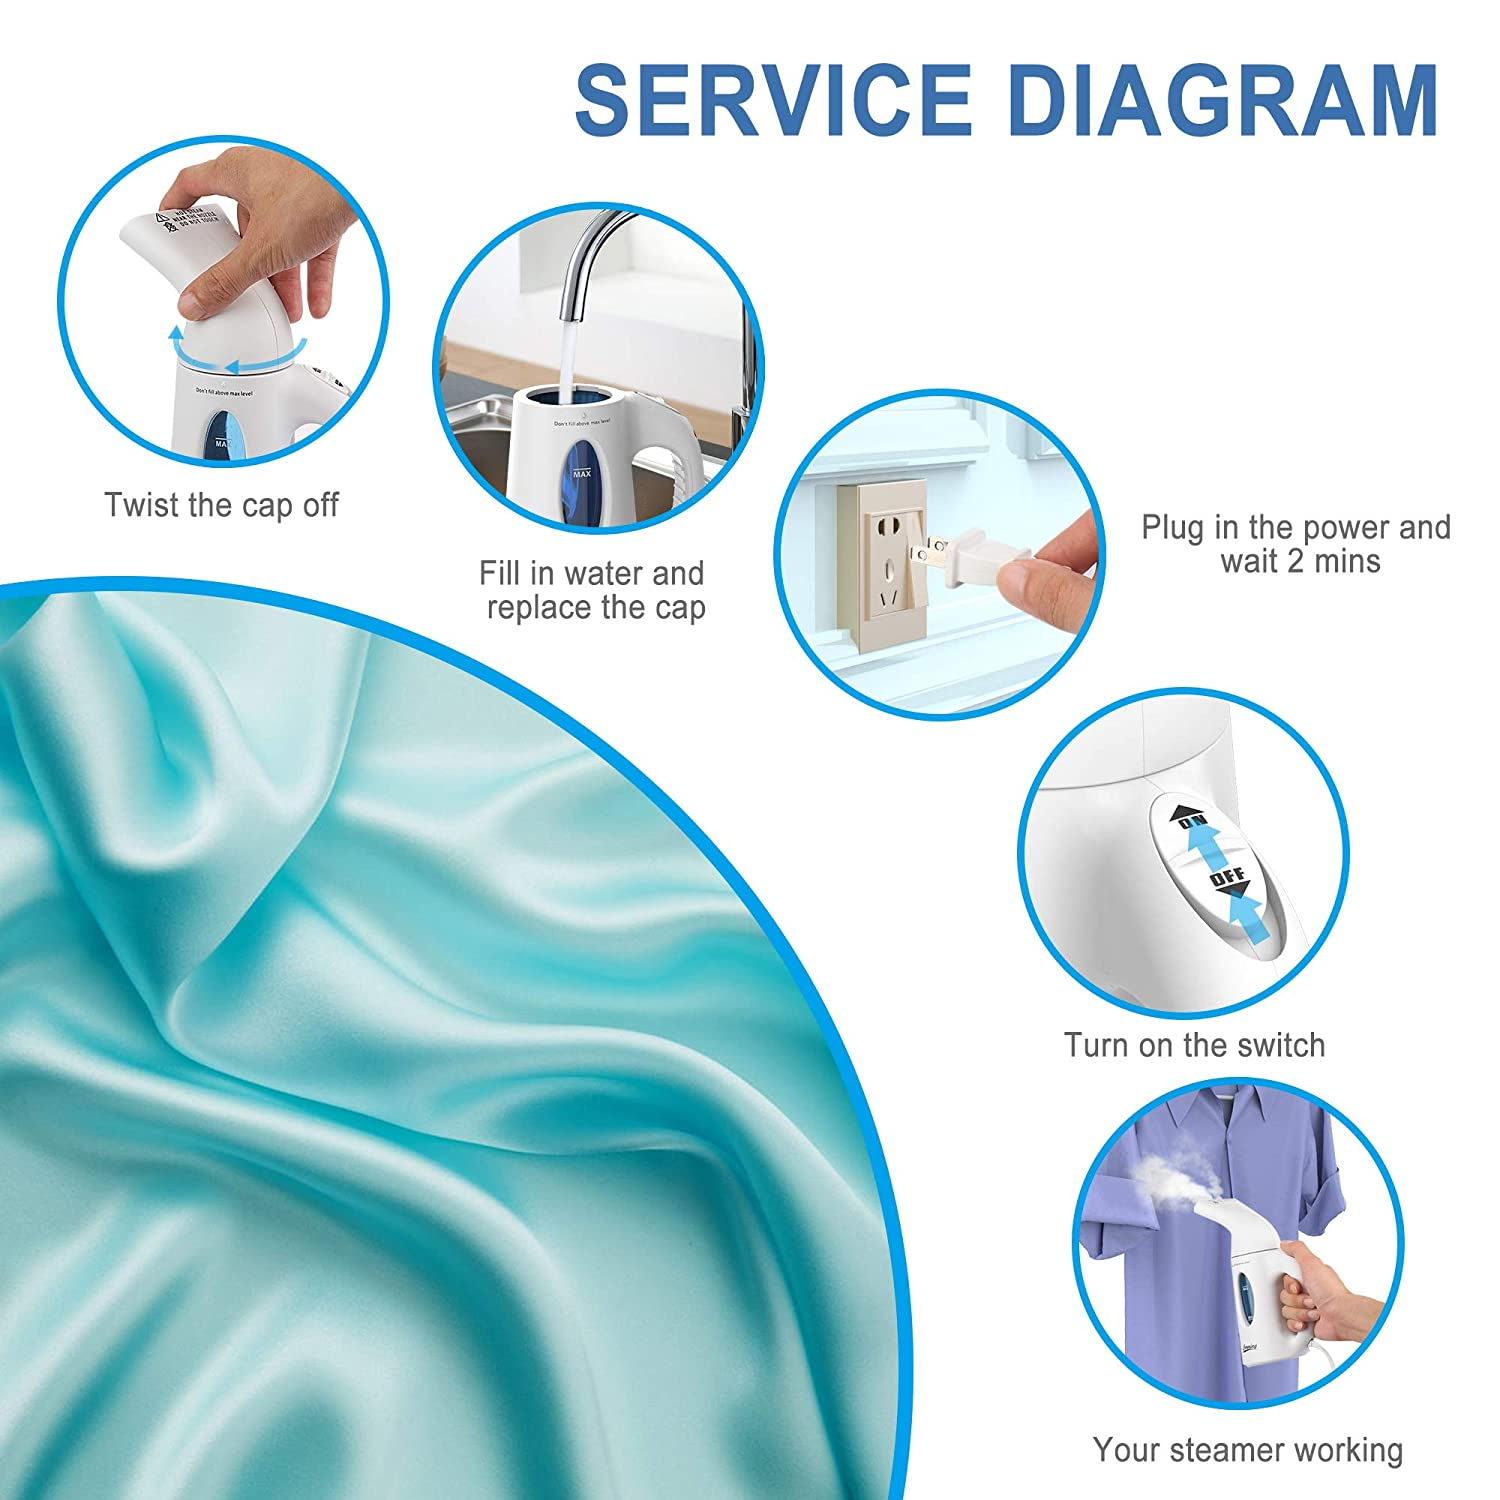 Evening Steamer for Clothes Handheld Clothes Steamer Fast Heat-up Wrinkle Remover Clothes Garment Fabric Steamer Remove Wrinkles Steam Soften Clean Sanitize Sterilize Defrost Perfect for Travel Home